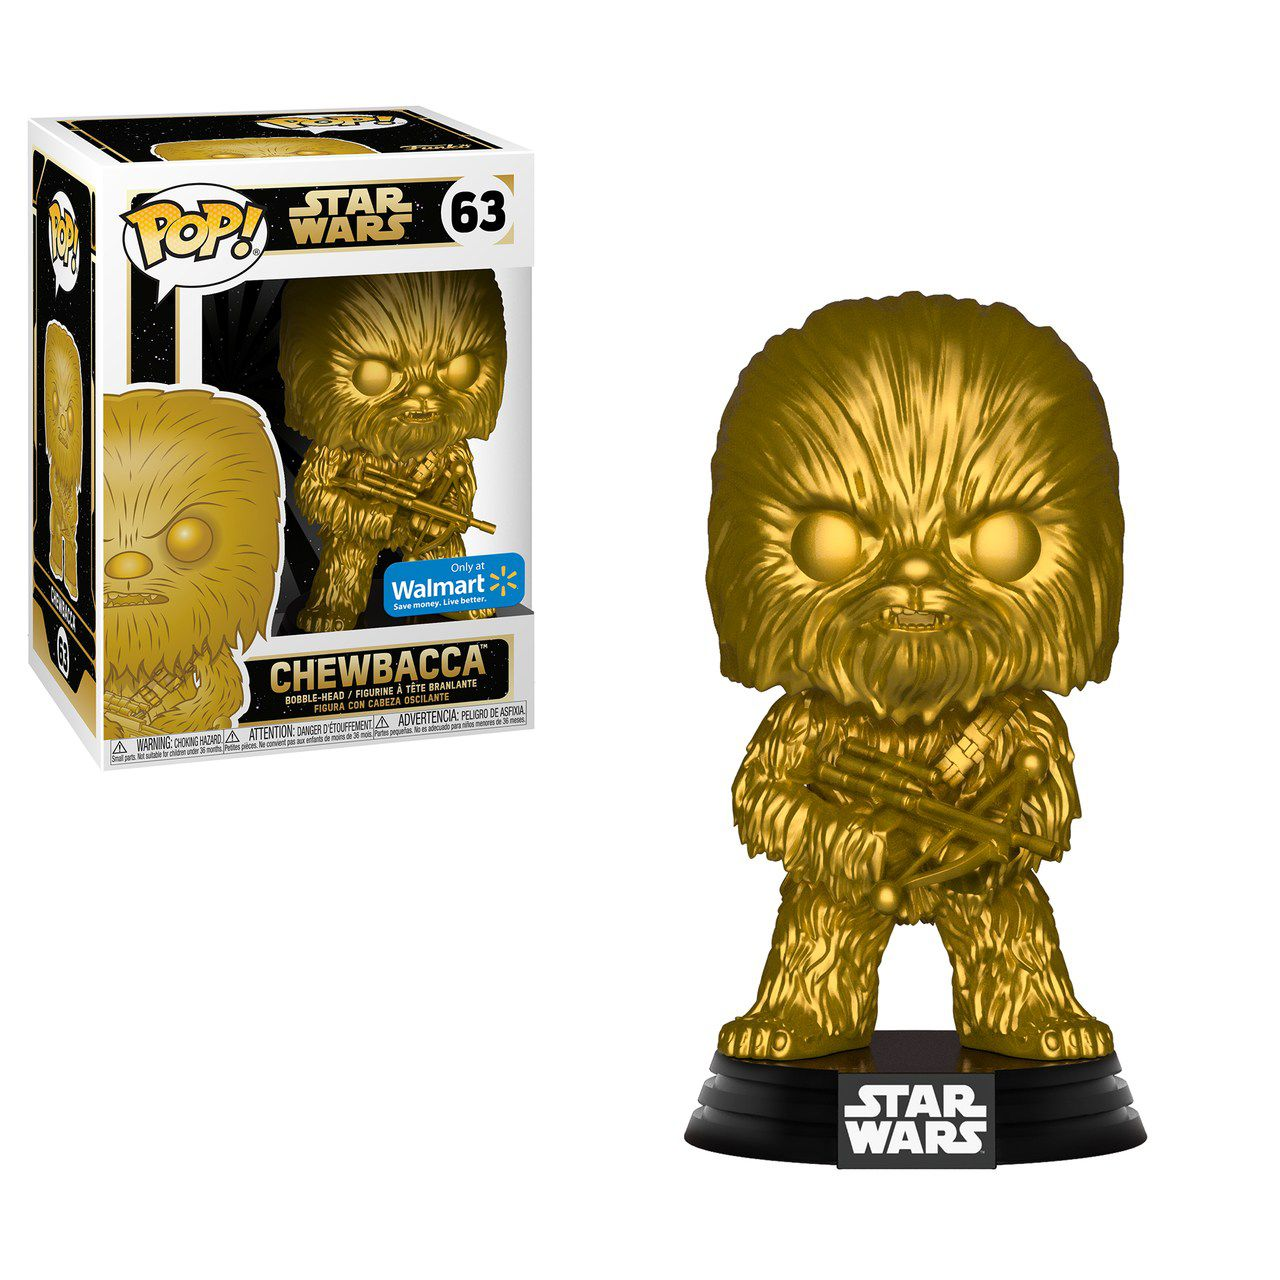 Pop! Chewbacca: Star Wars (Gold Metallic) Exclusivo #63 - Funko (Apenas Venda Online)